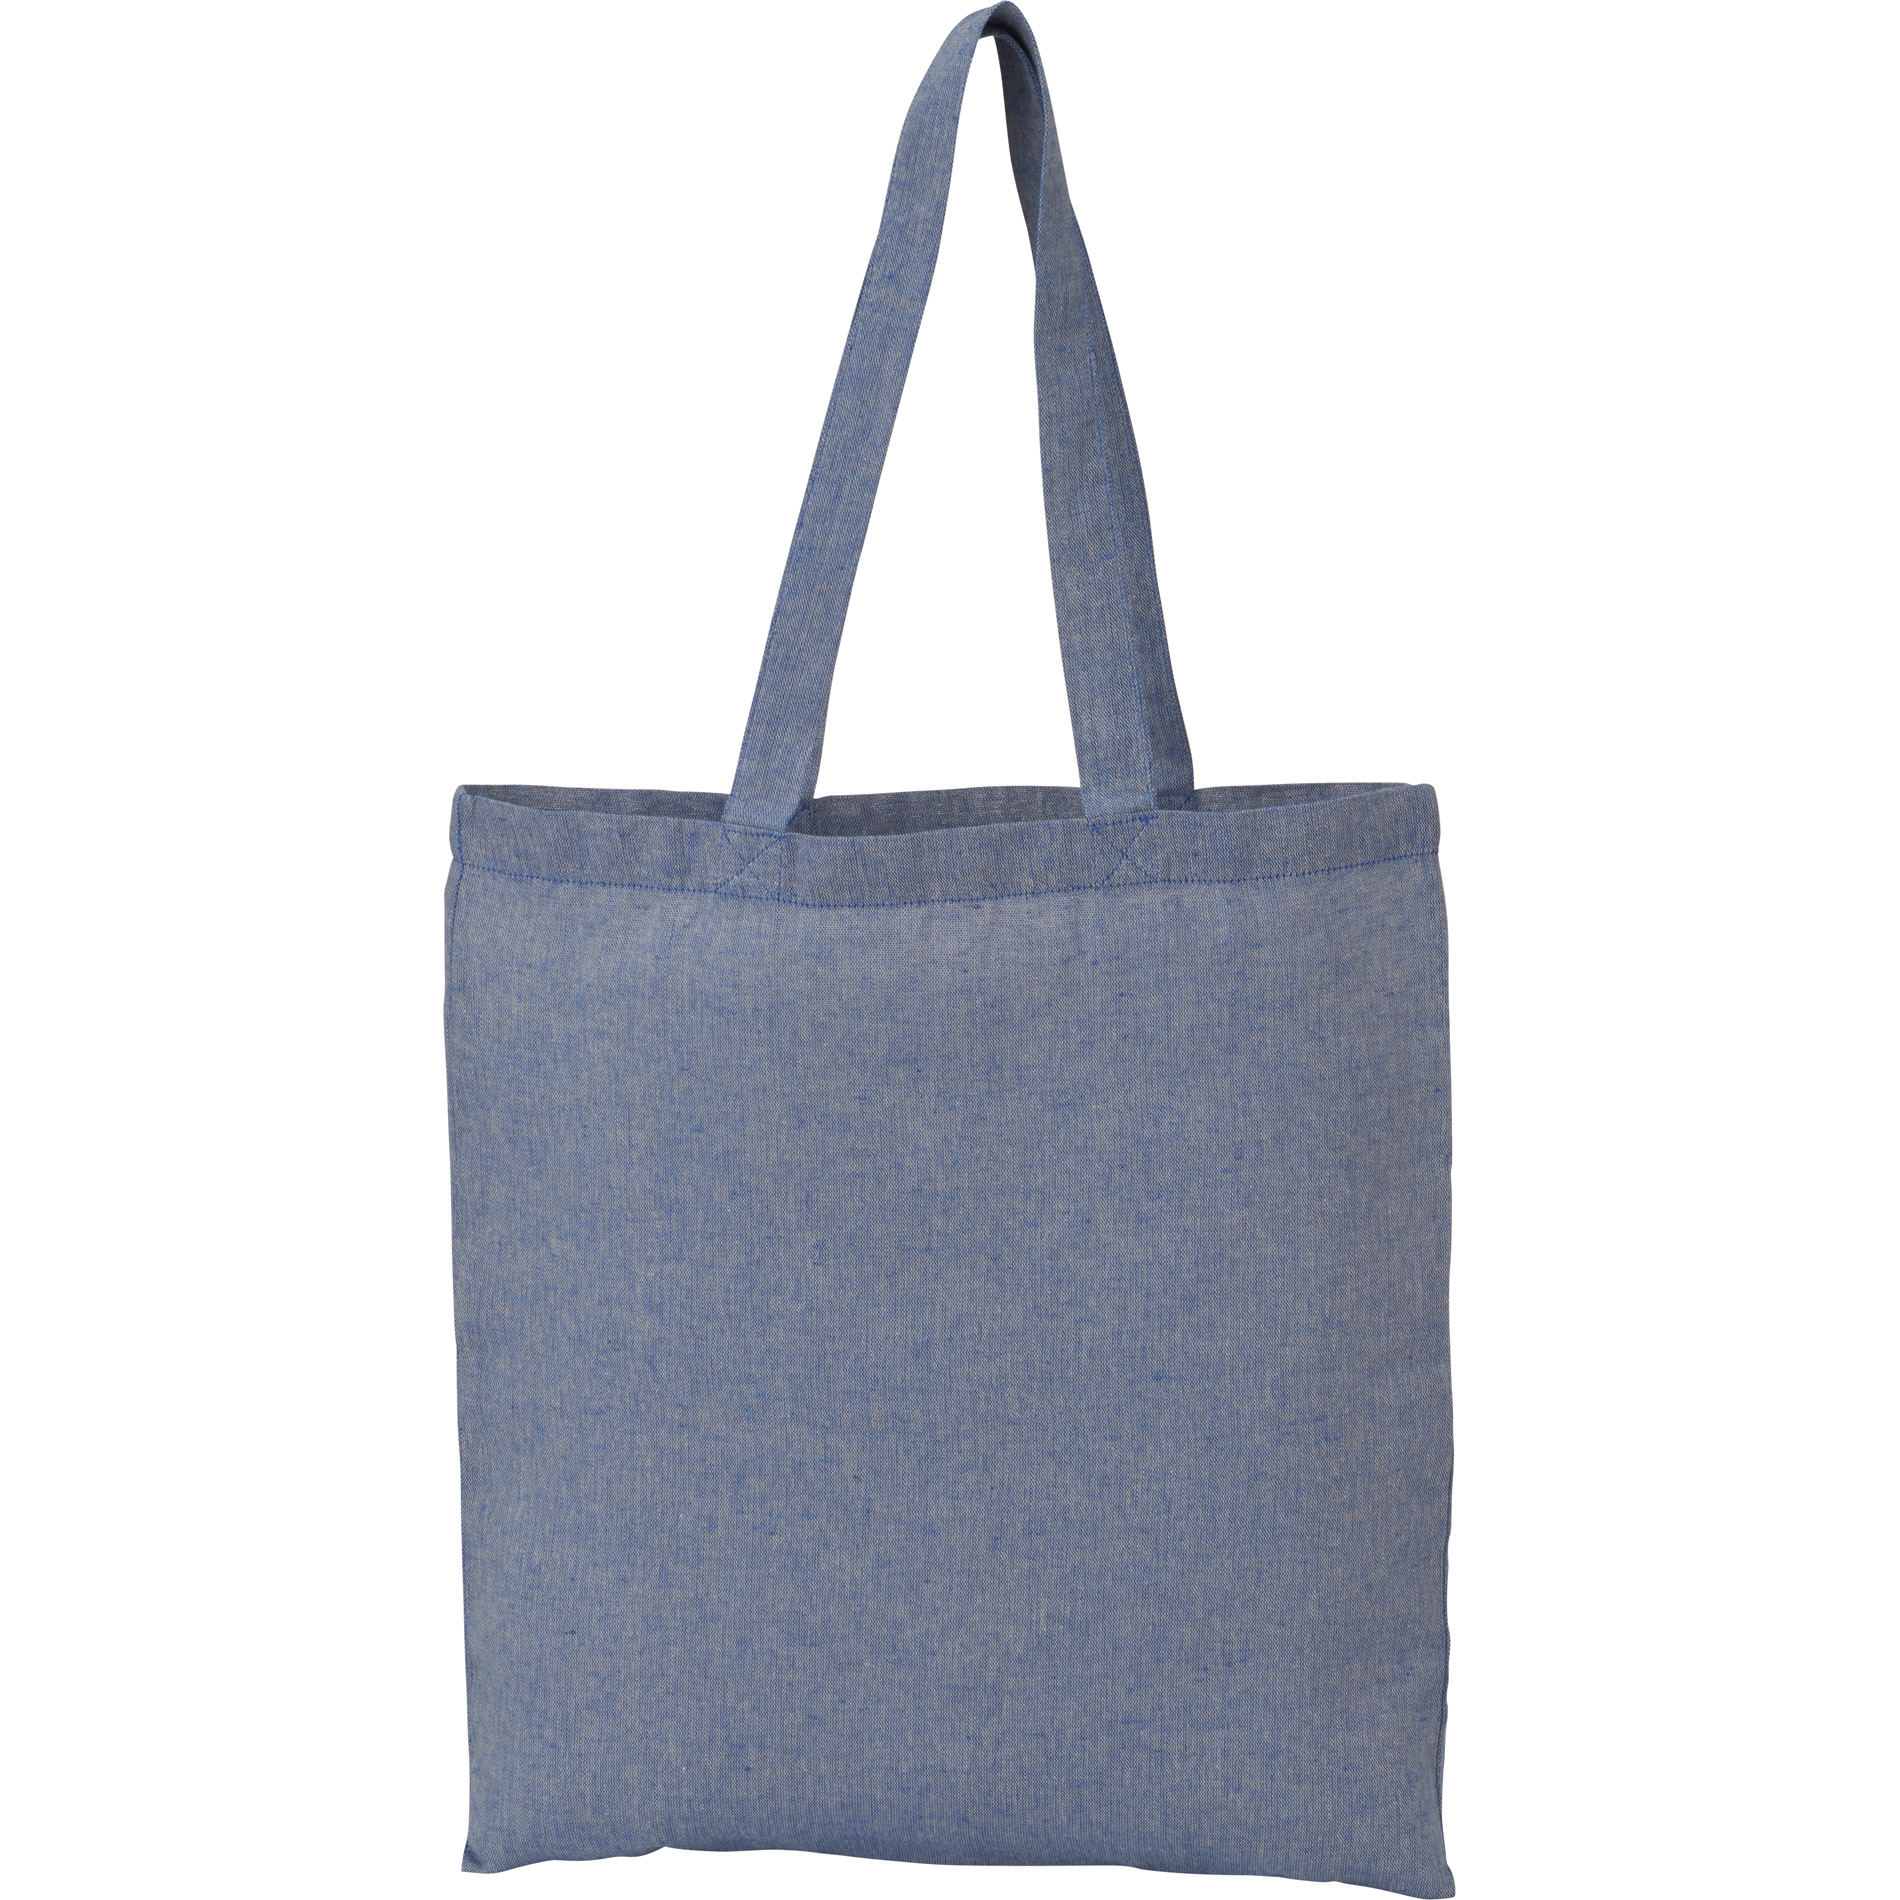 LEEDS SM-5830 - Recycled 5oz Cotton Twill Tote